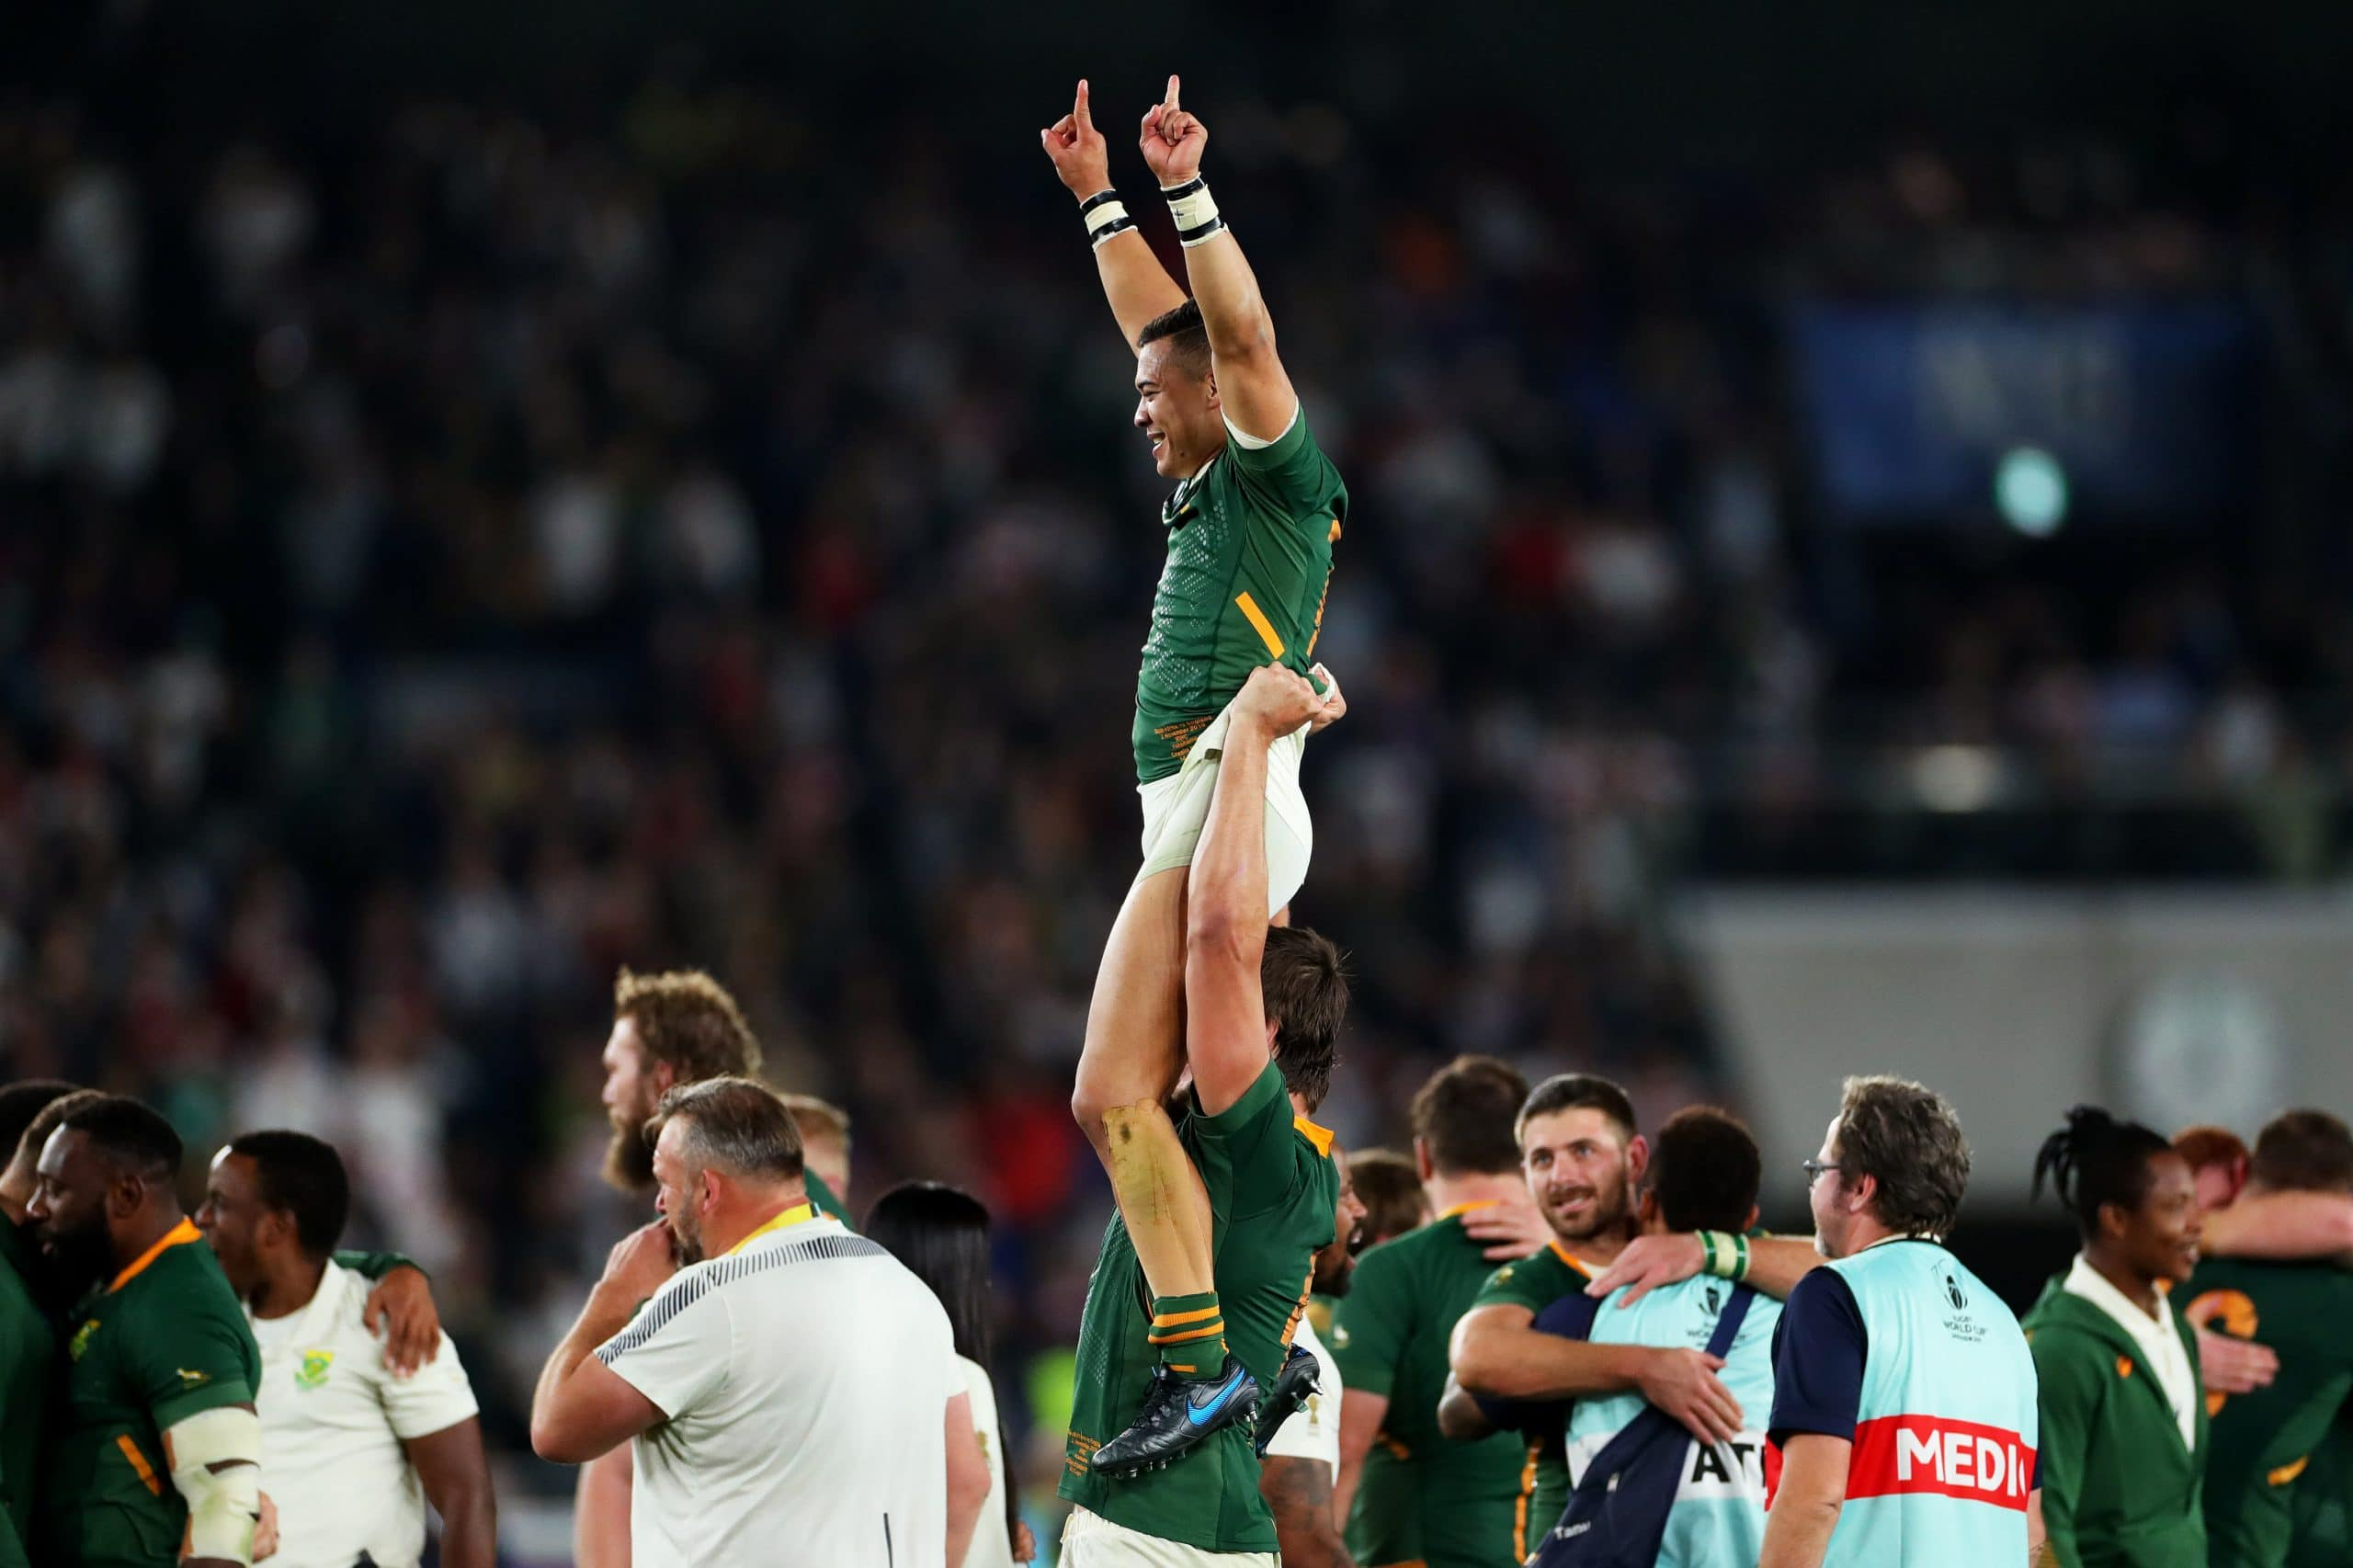 What 2019 and the Rugby World Cup can teach us about value-driven organisations